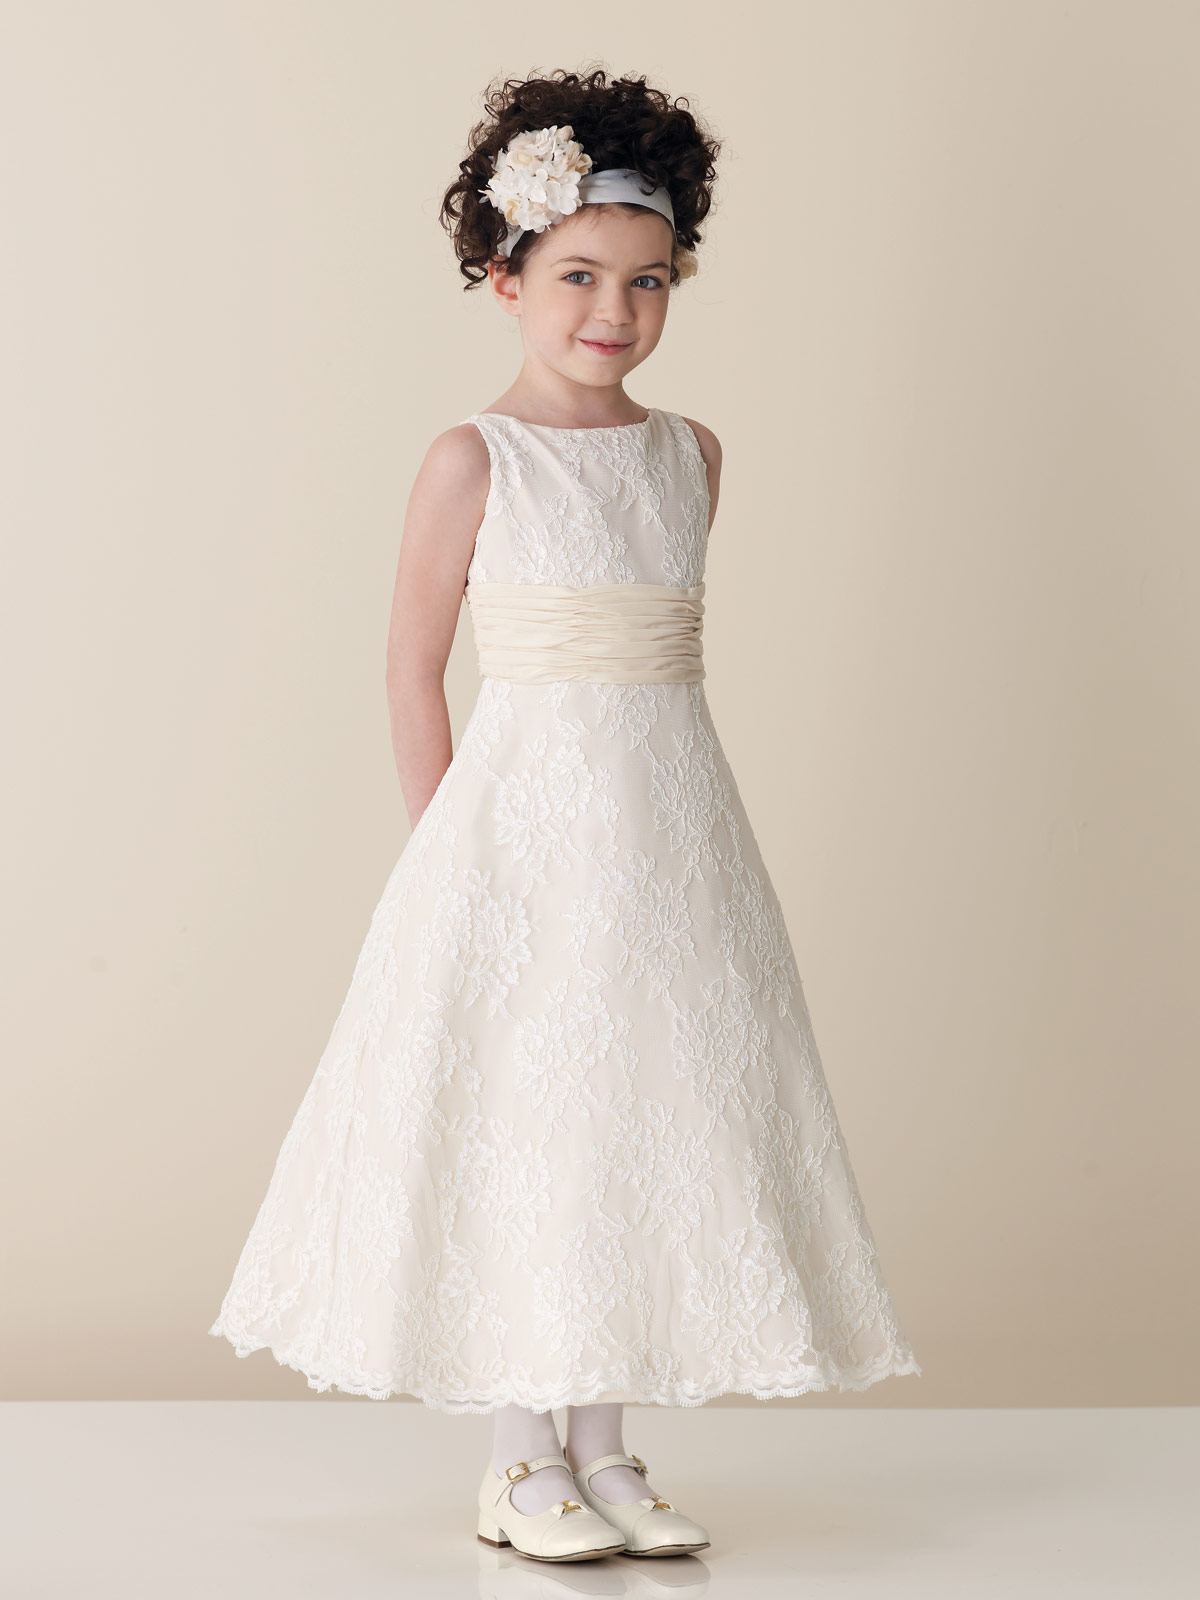 Ideas evening wedding dresses for junior child the for Wedding dresses for child